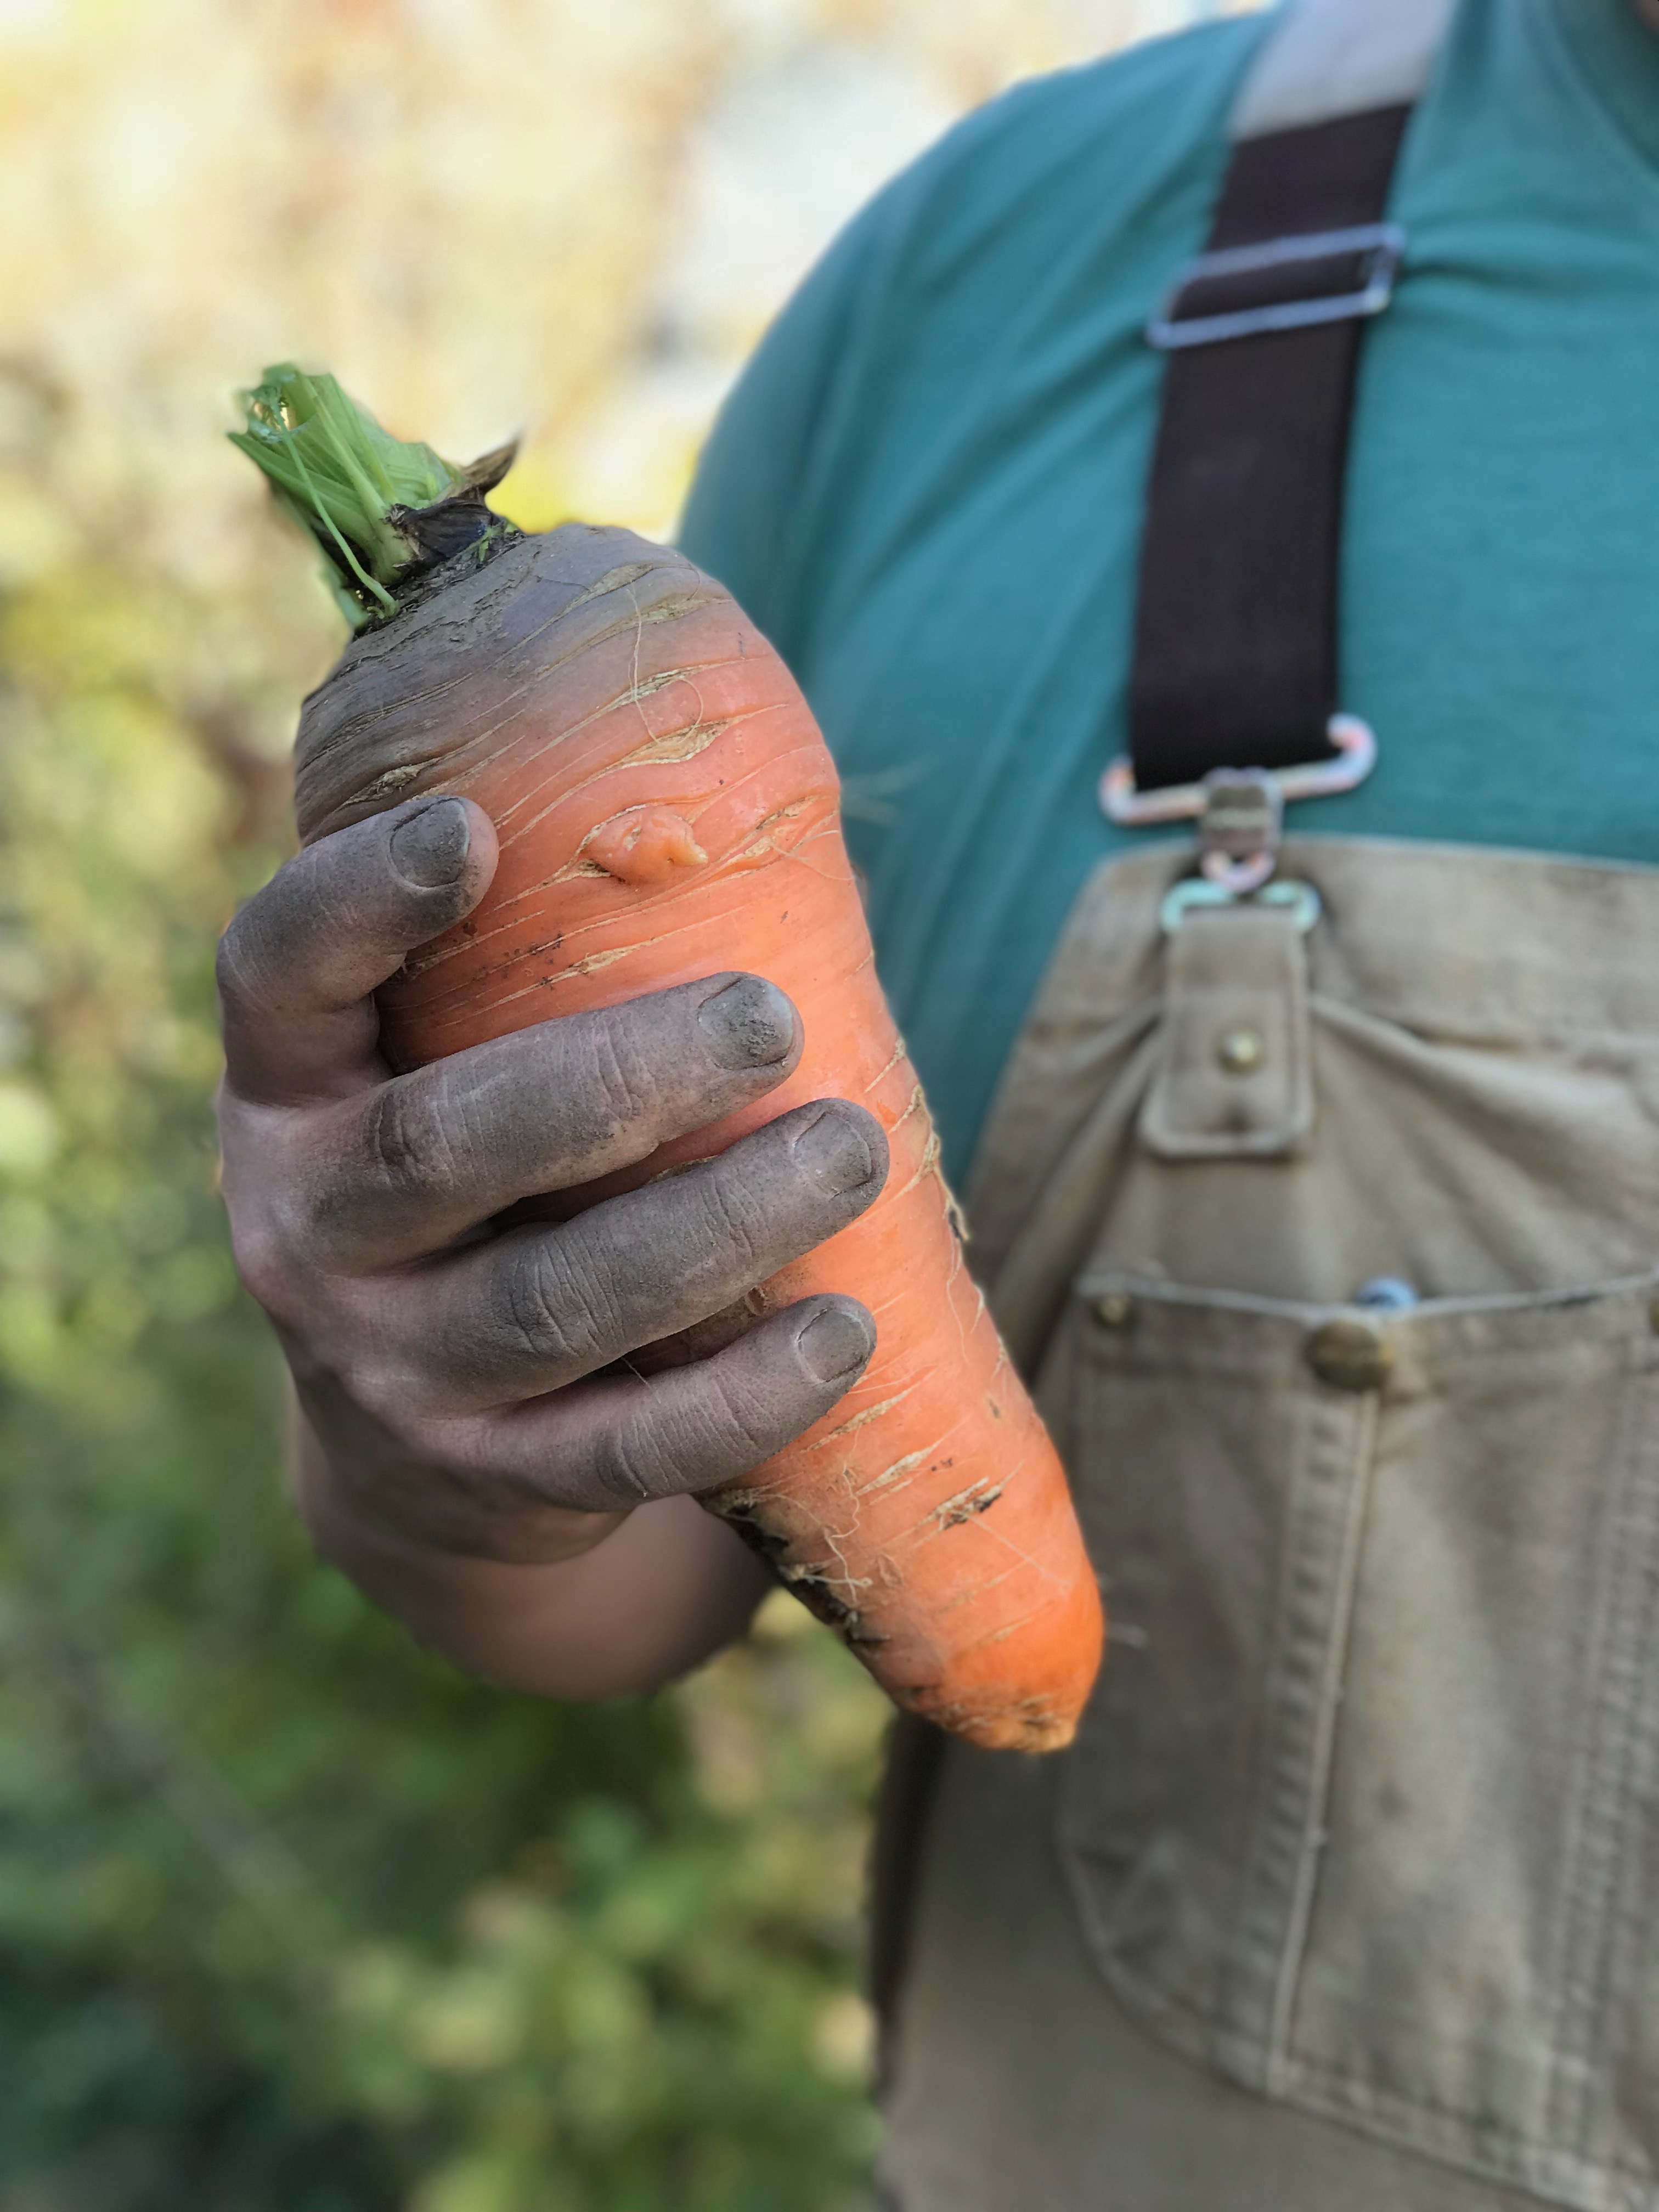 Karl holding one of the carrots he grew on his farm